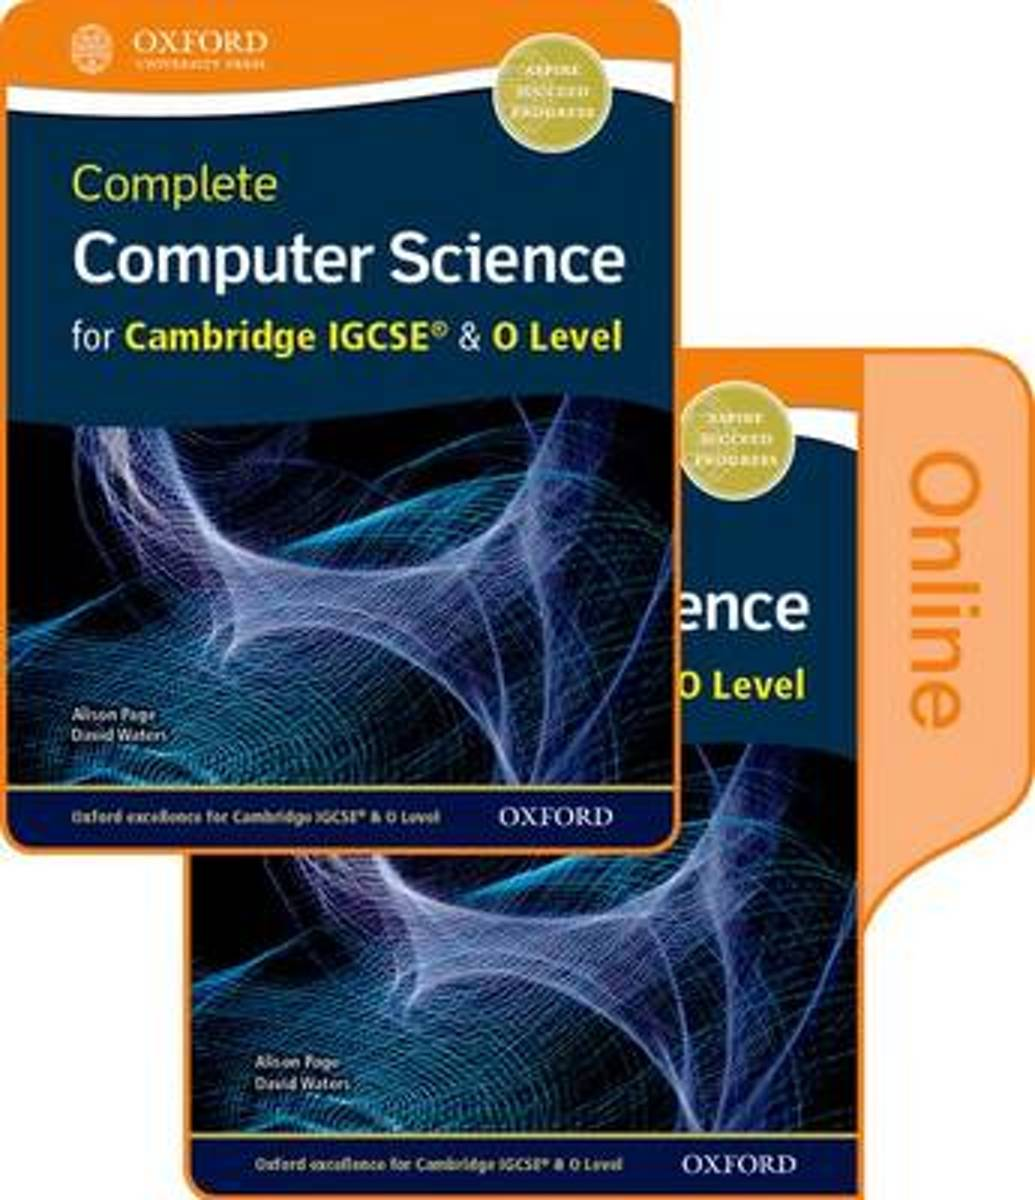 Complete Computer Science for Cambridge IGCSE (R) & O Level Print & Online Student Book Pack